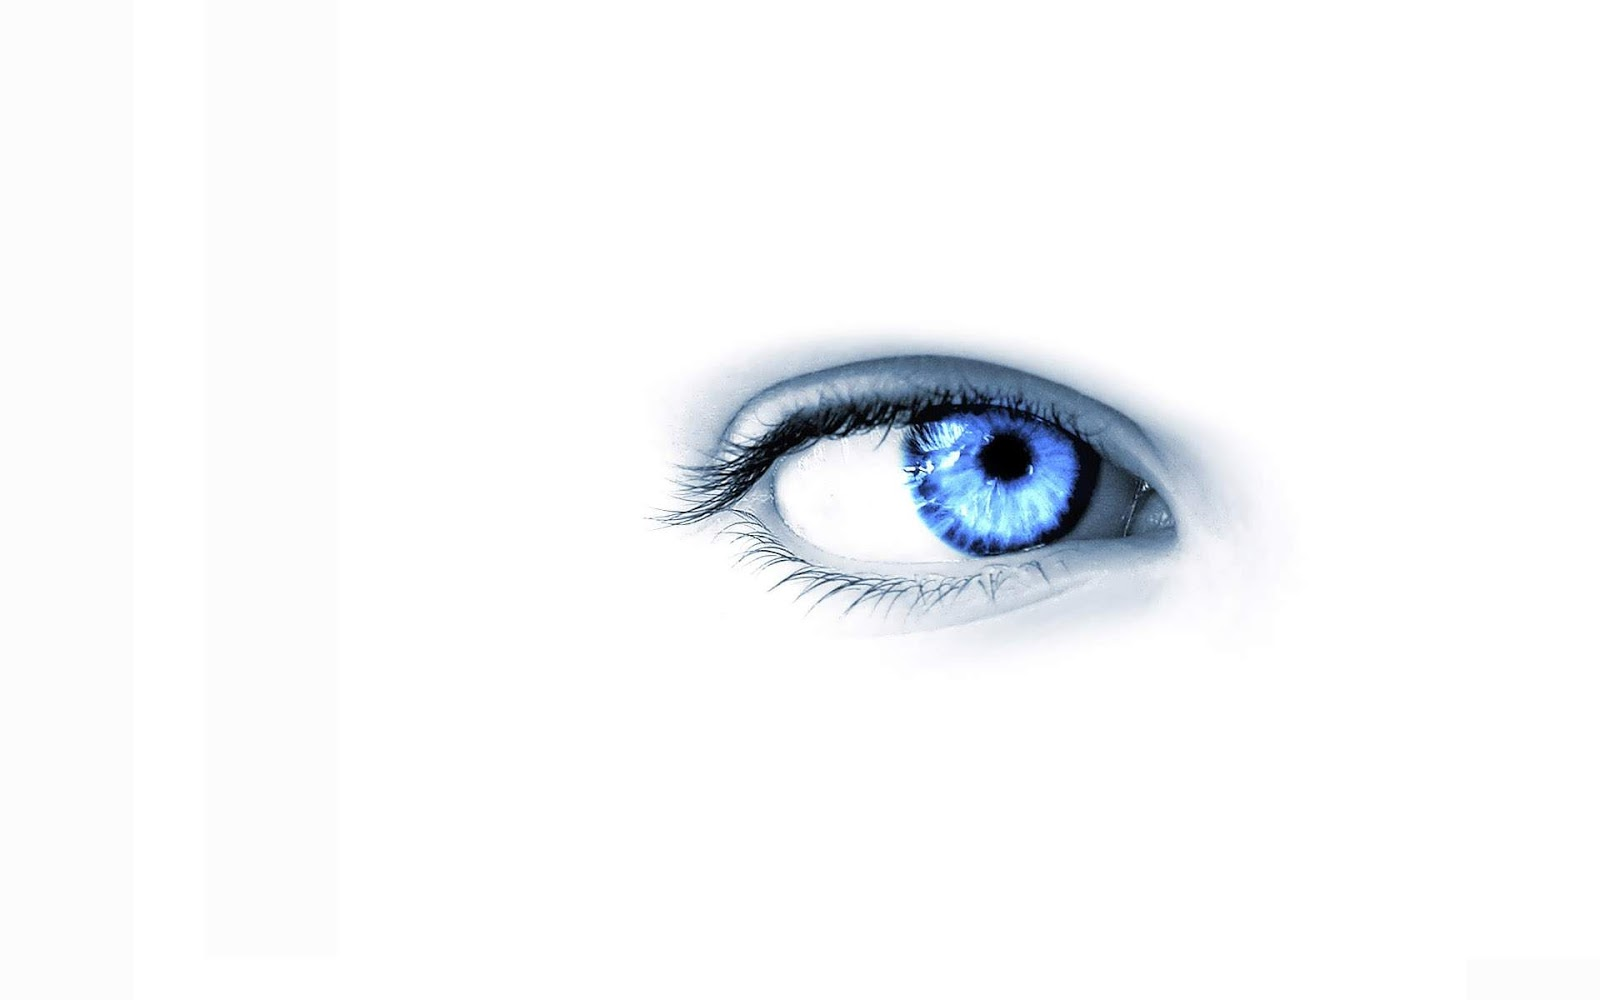 black and white wallpapers blue eye on white background